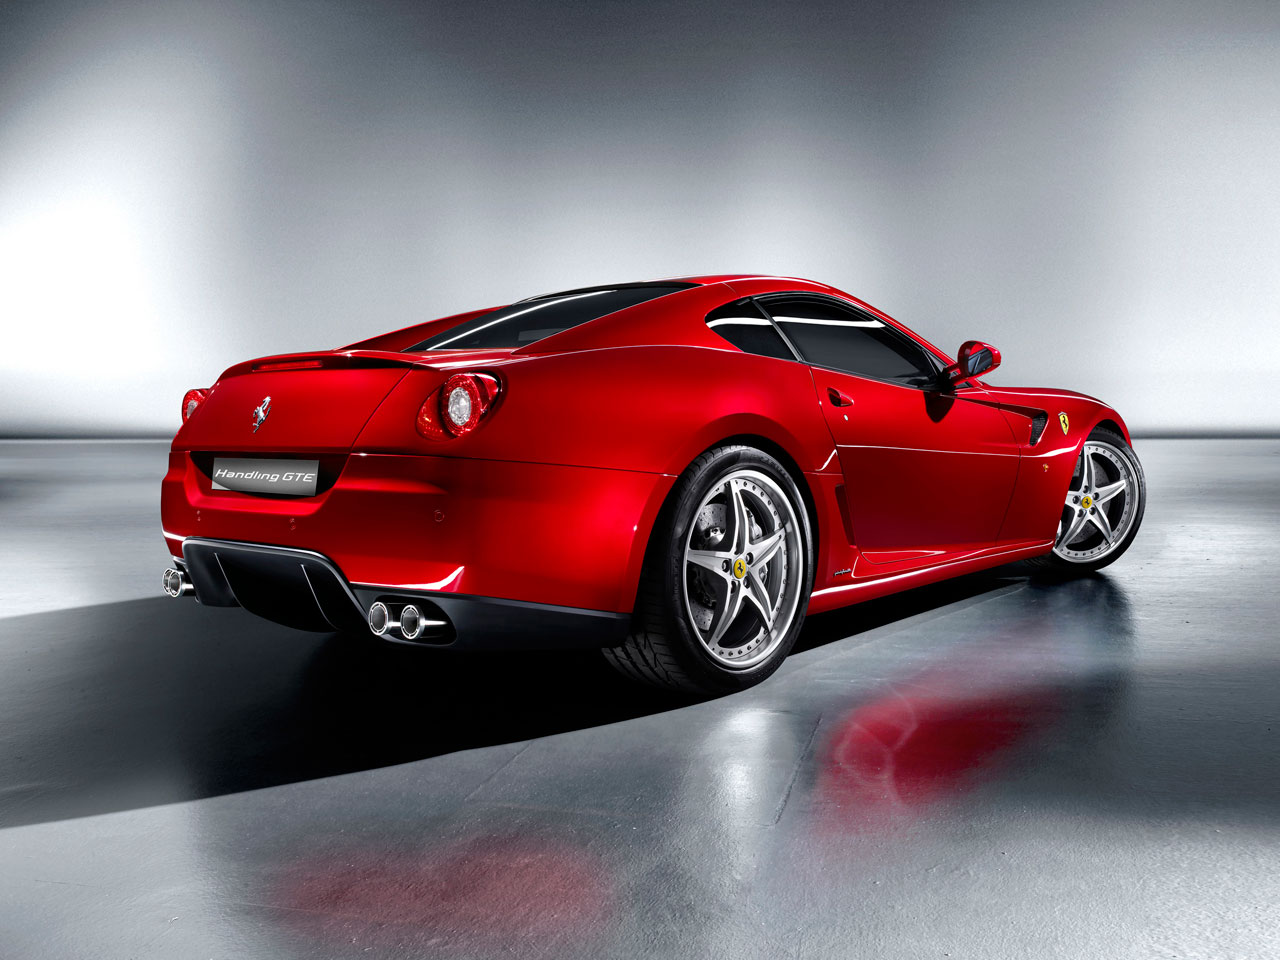 top cars ferrari 599 gtb fiorano hgte. Black Bedroom Furniture Sets. Home Design Ideas